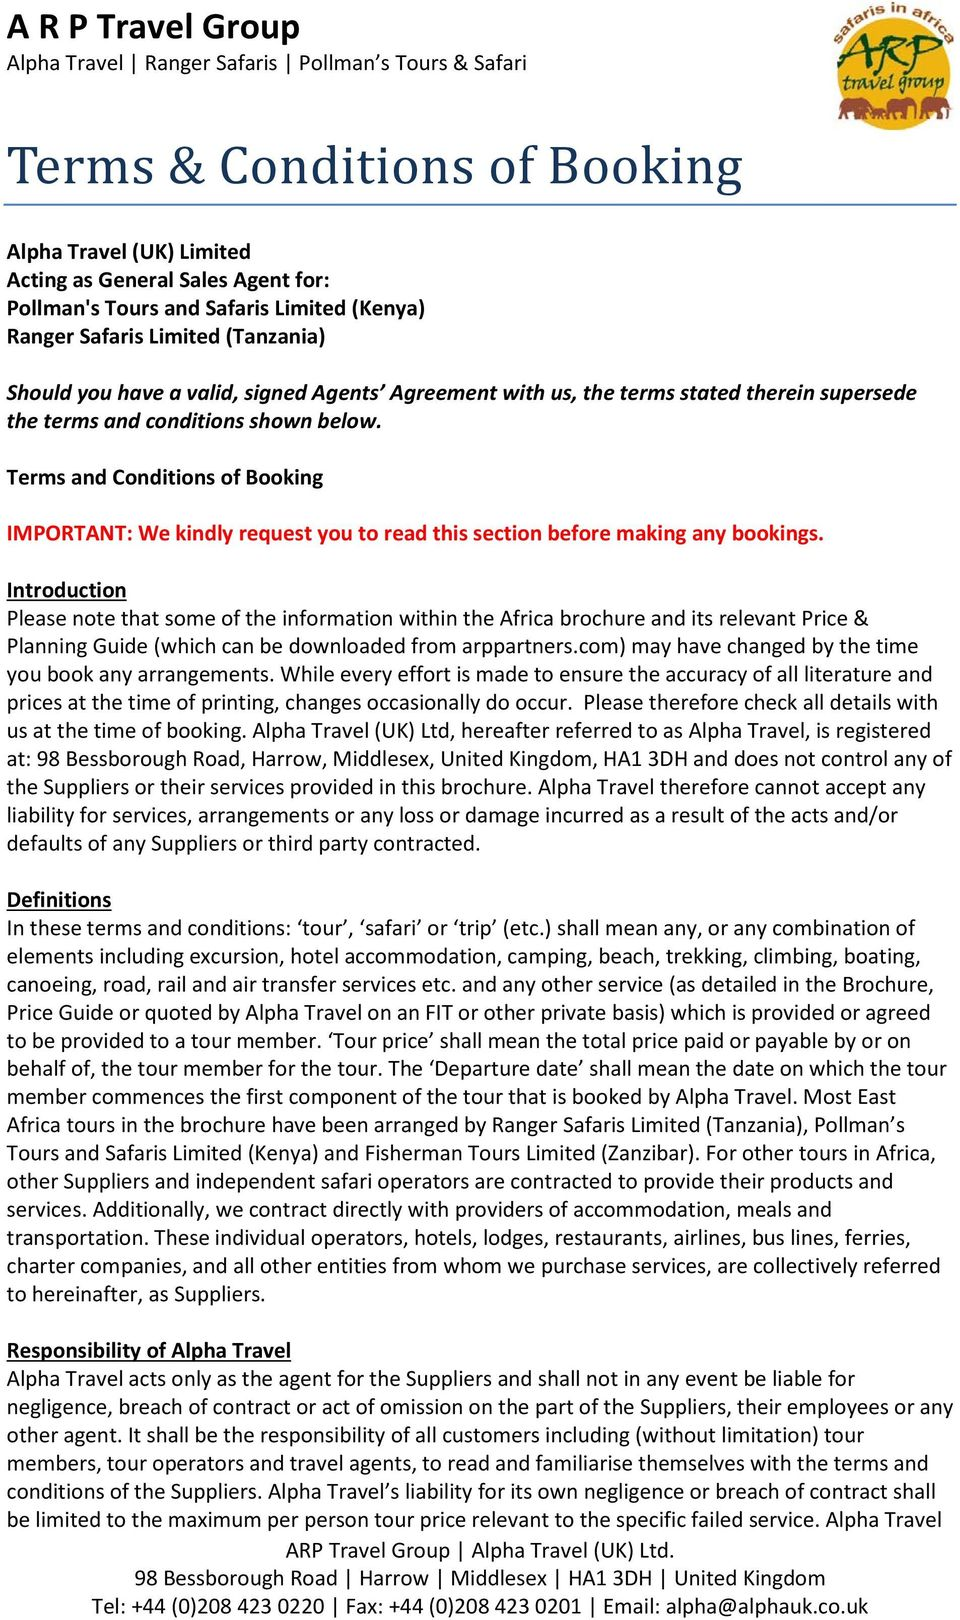 Terms & Conditions of Booking - PDF